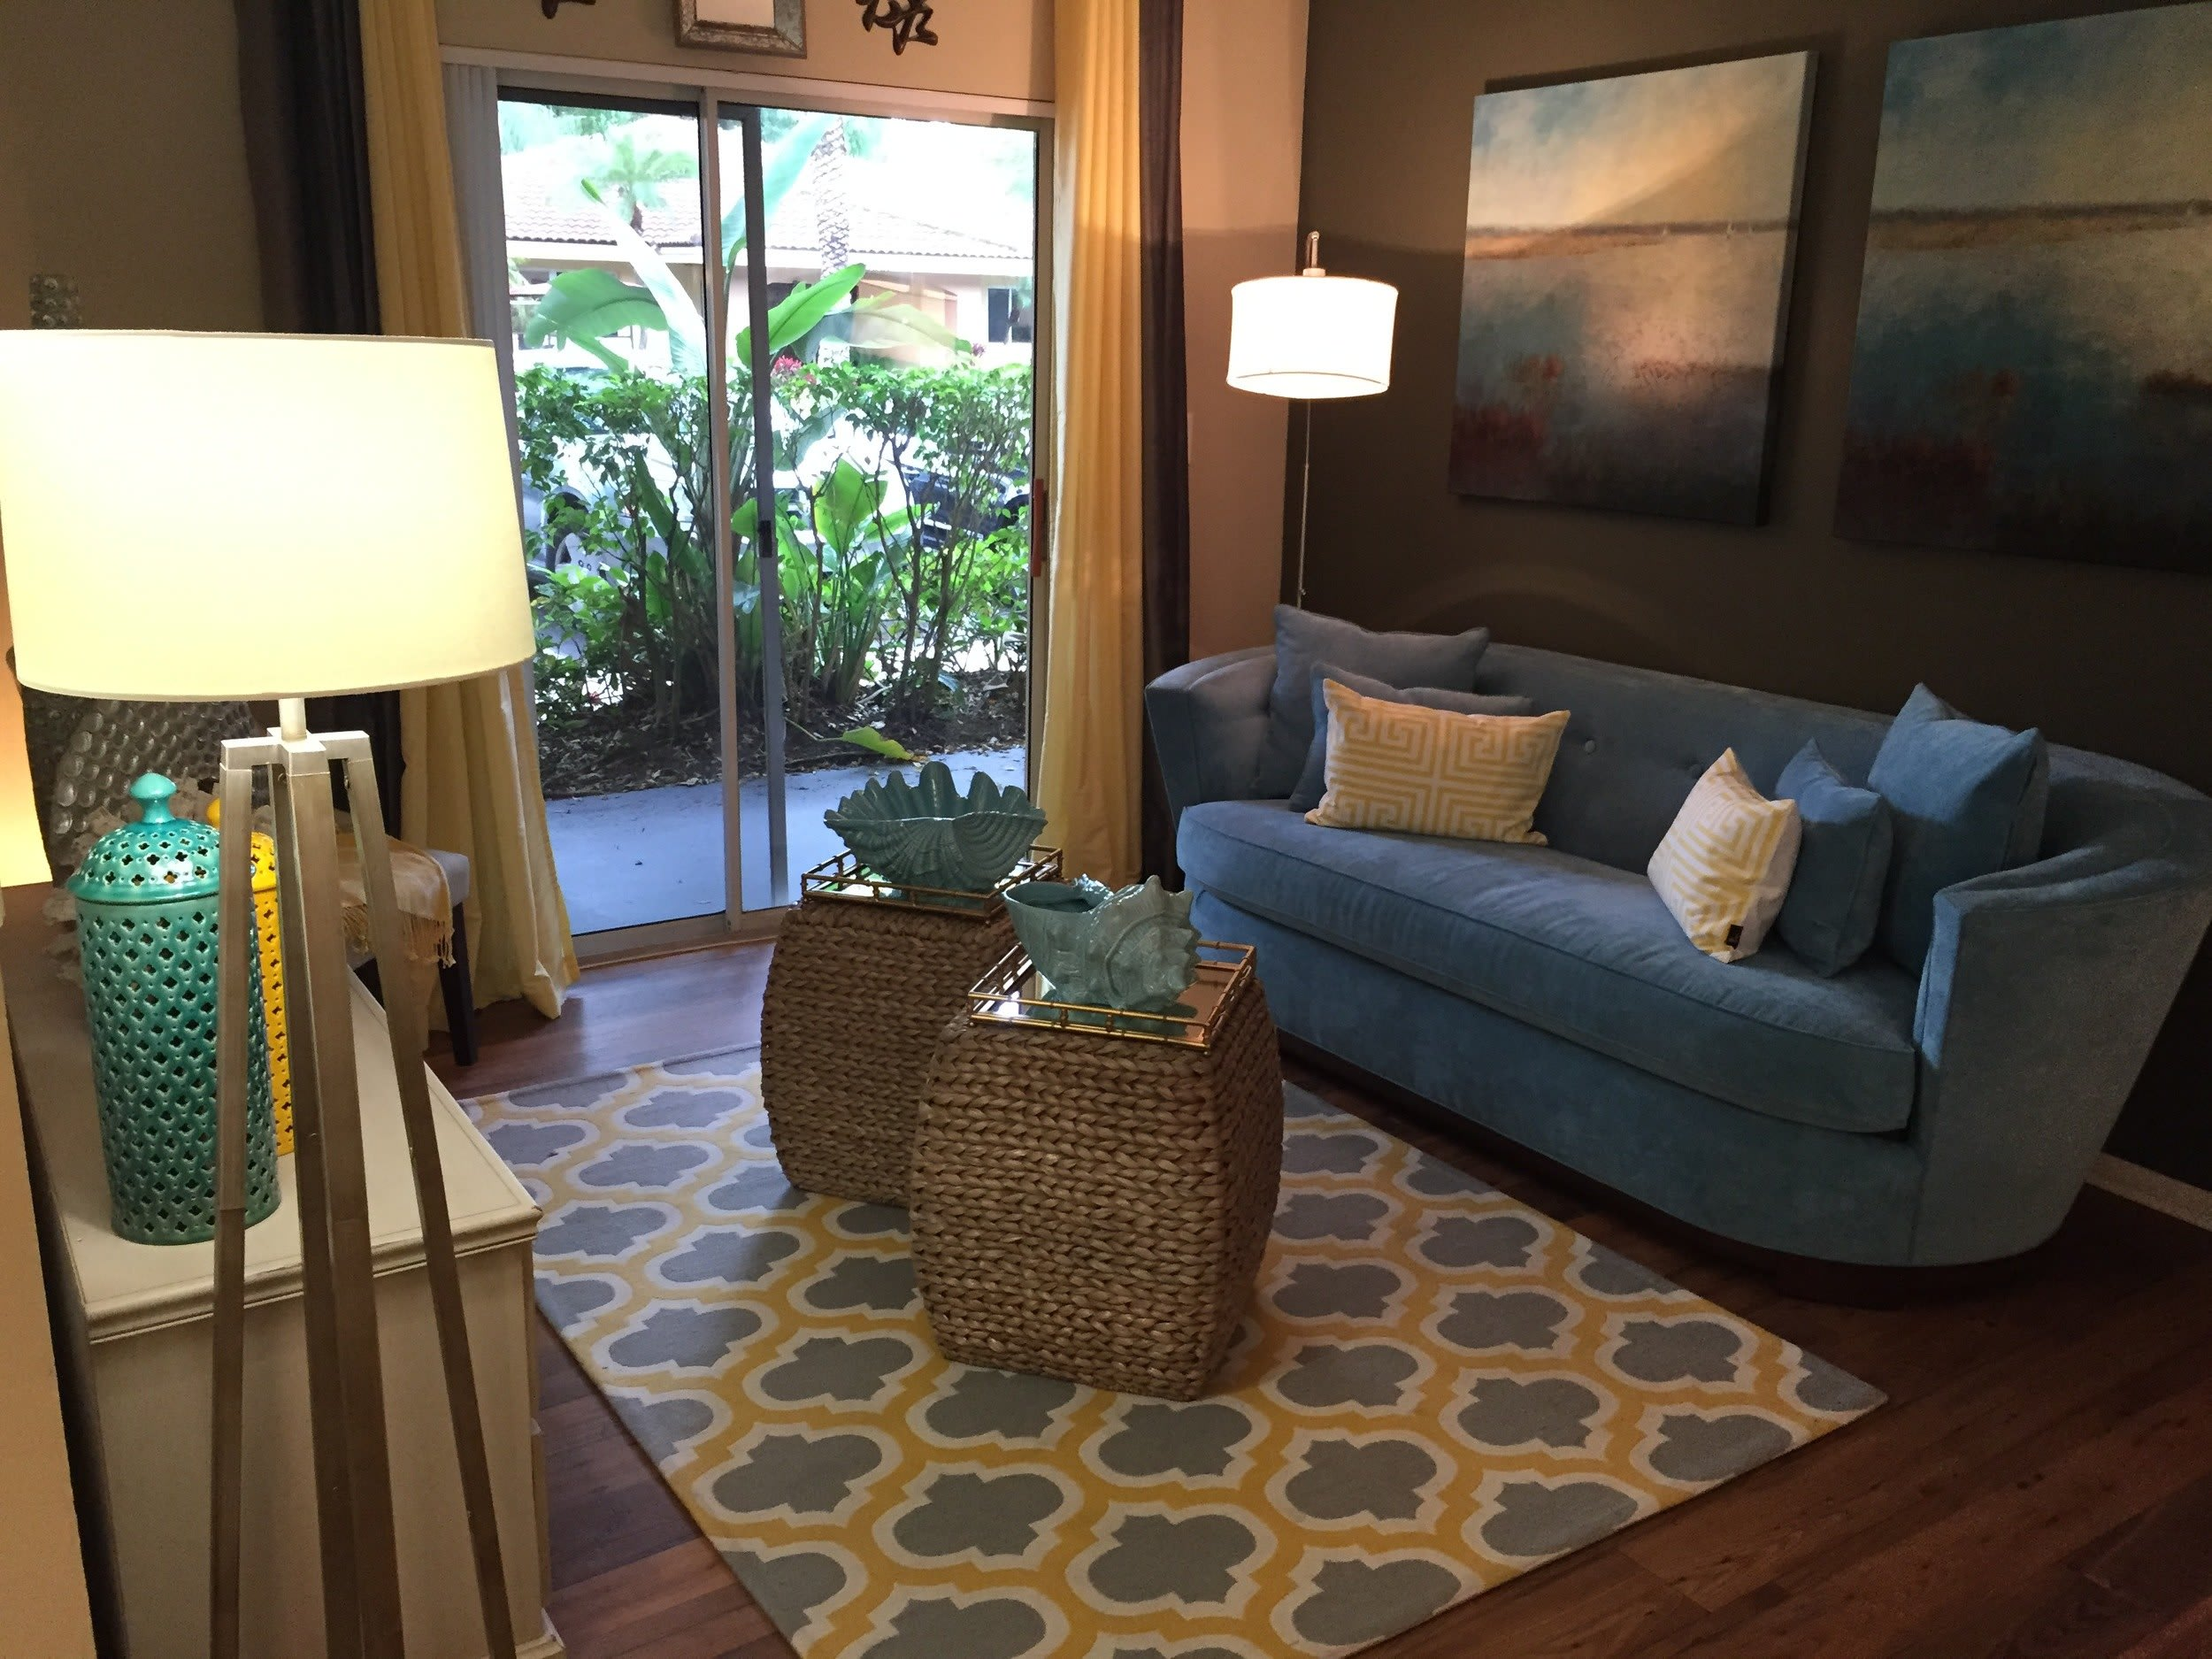 Living Room at Fairway View Apartments in Hialeah, Florida